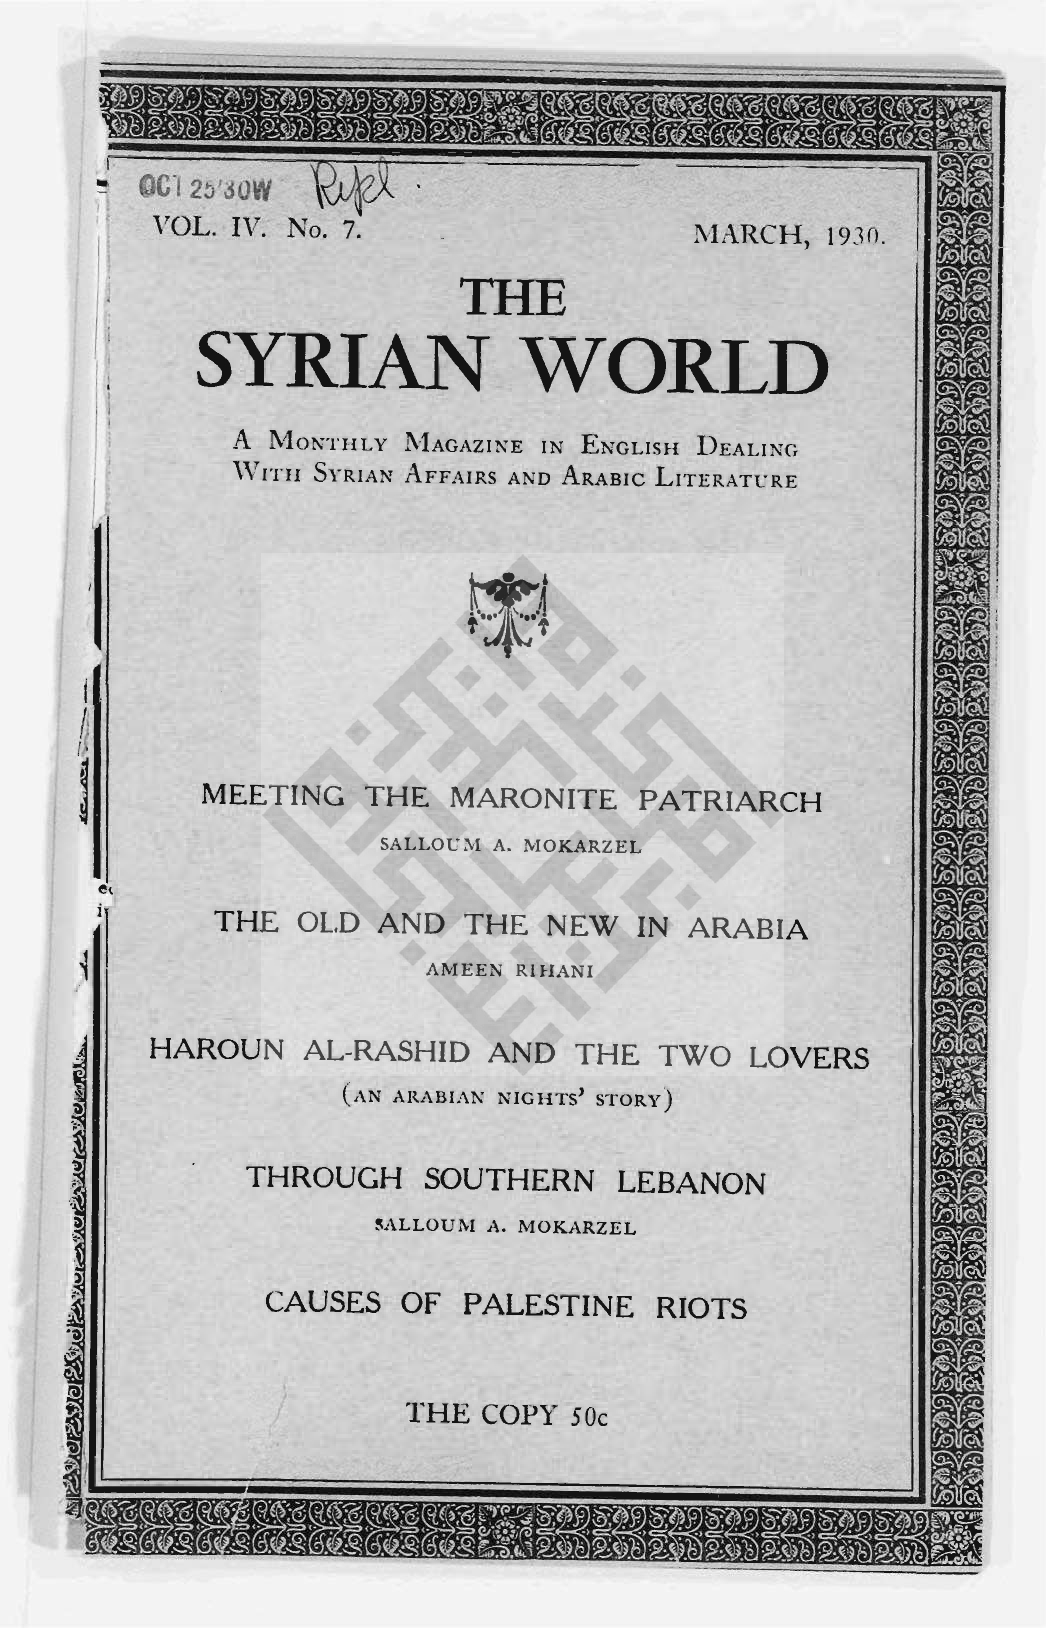 On Giving and Taking, The Syrian World, 4, 7, March 1930, p. 32